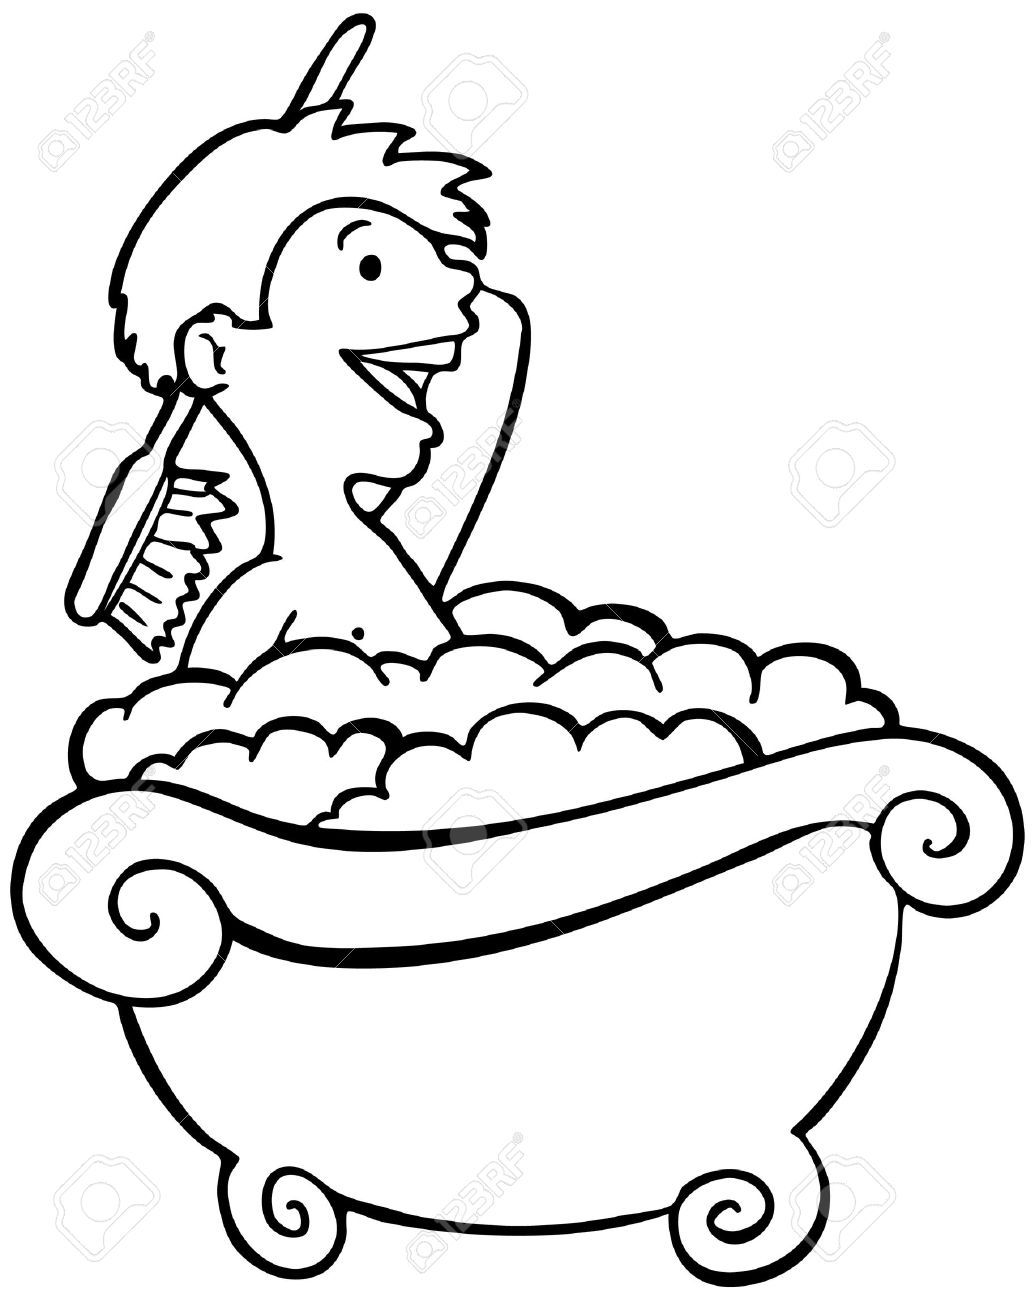 Taking a station . Bath clipart black and white